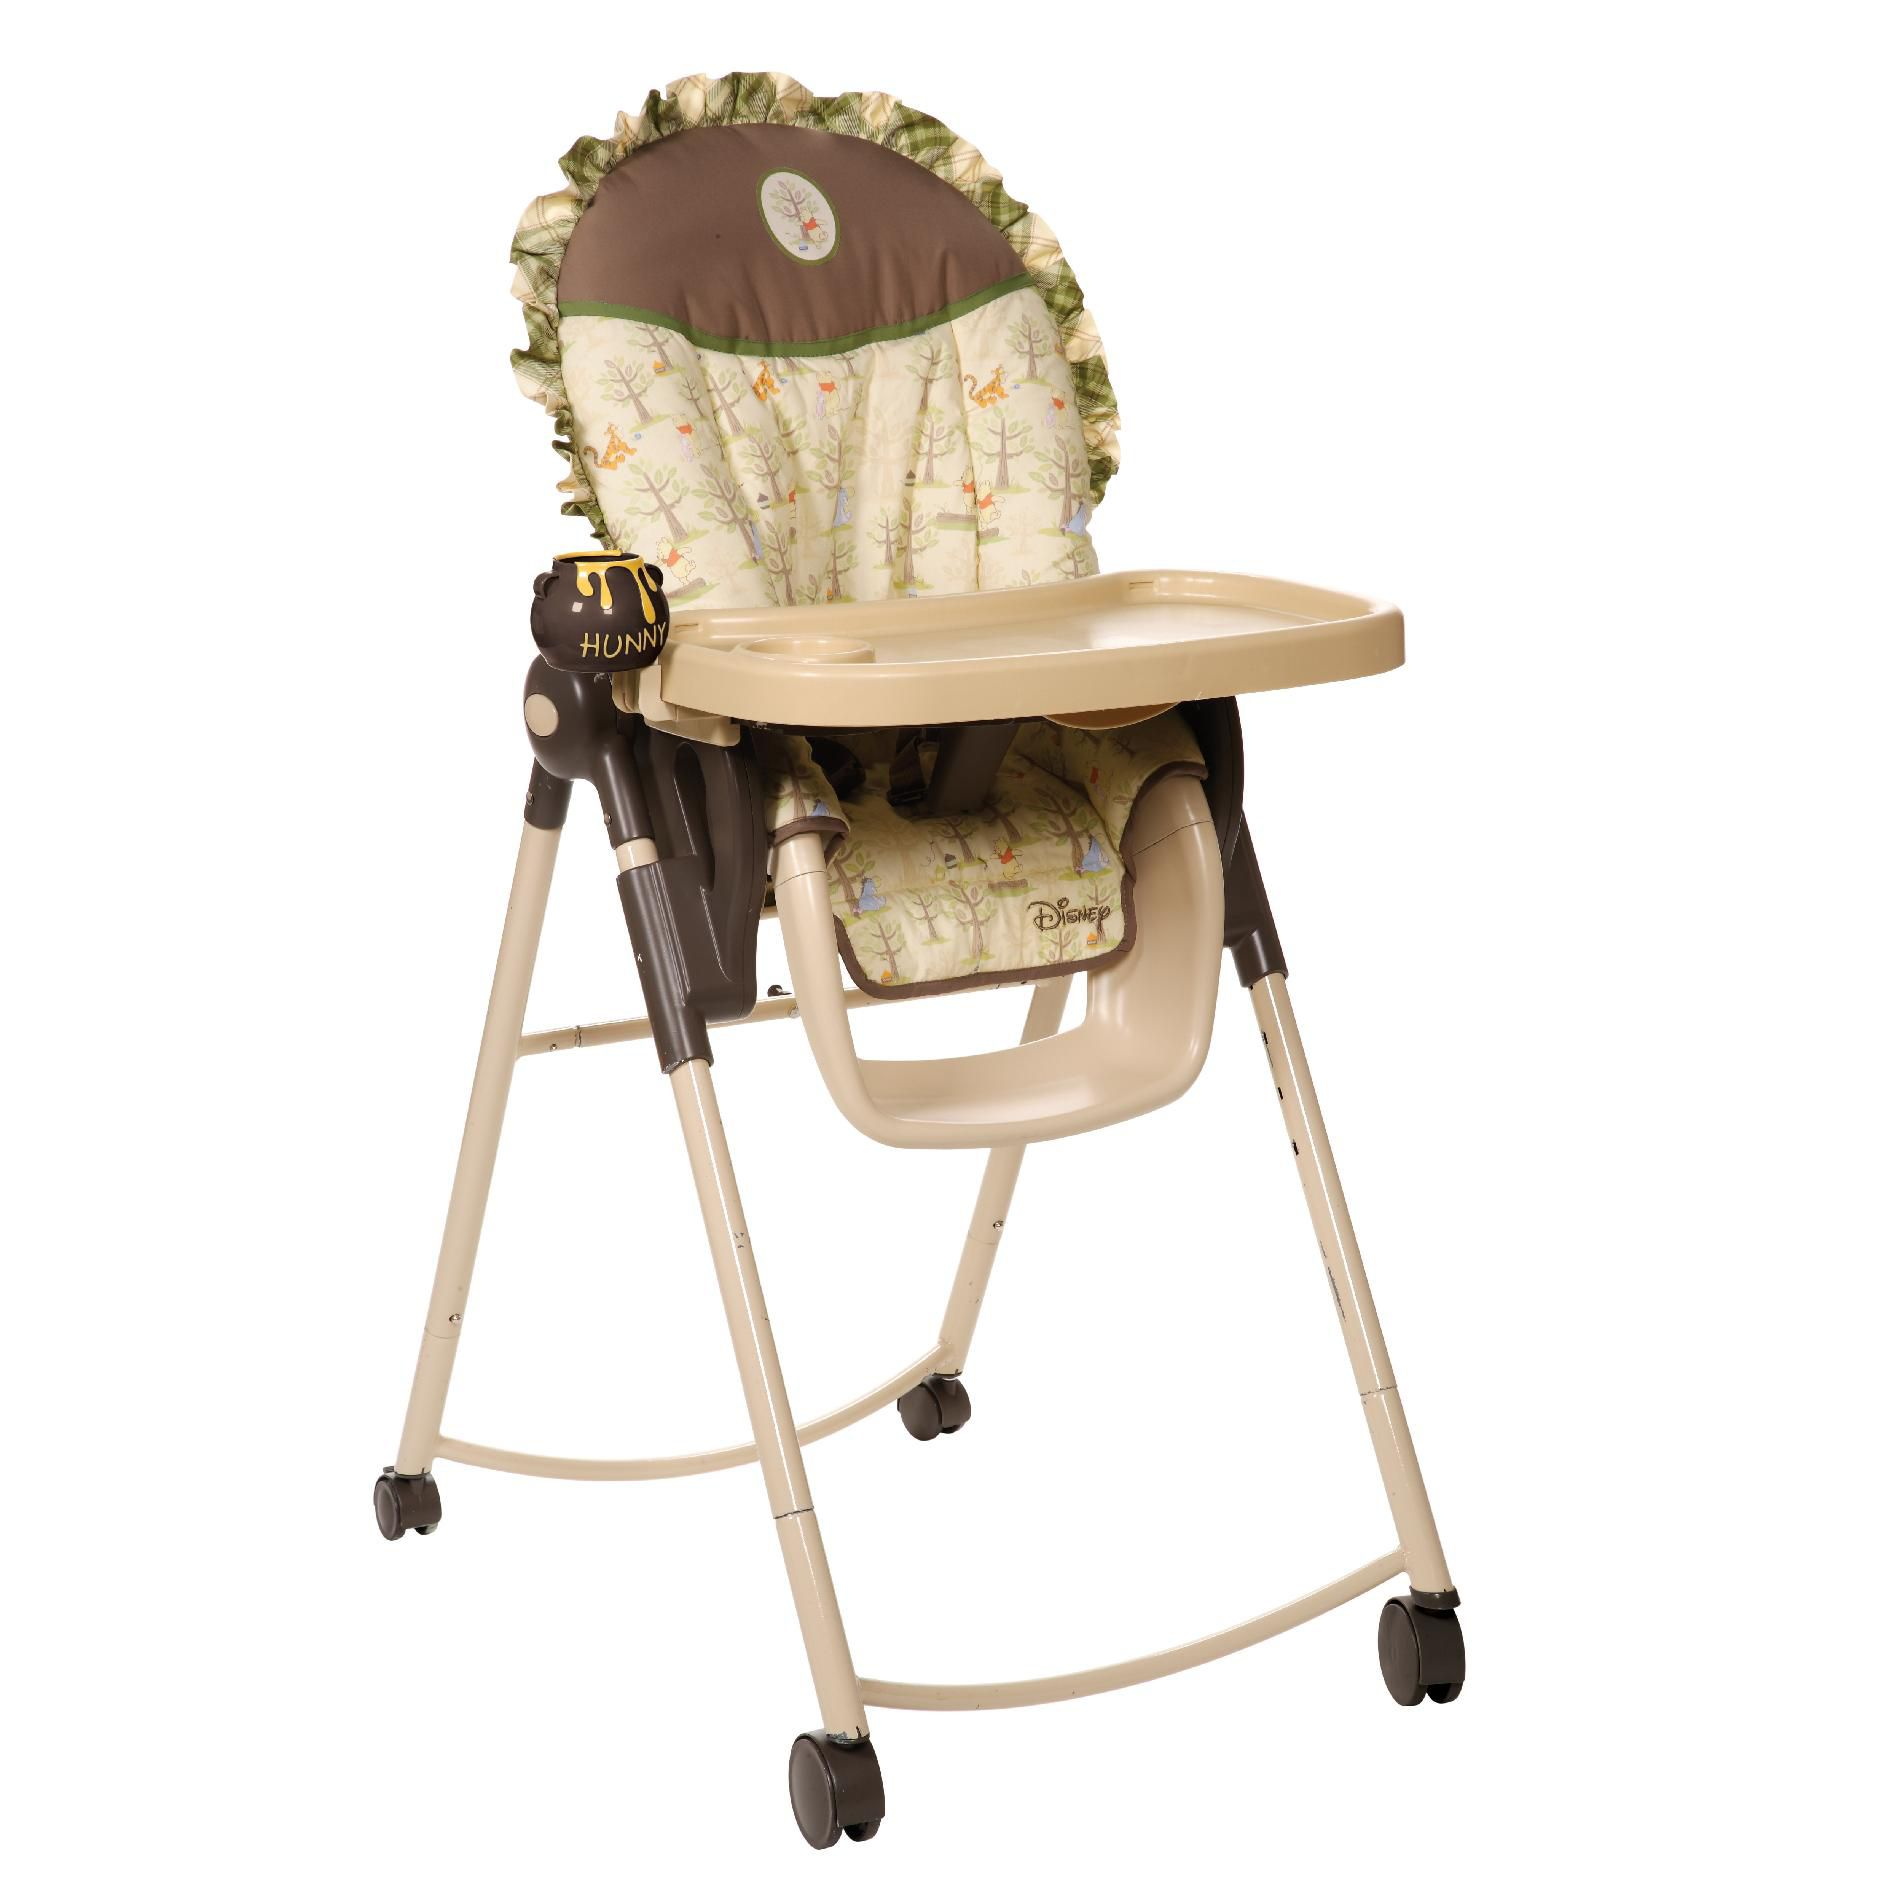 Disney Winnie the Pooh Adjustable High Chair  Picnic Place